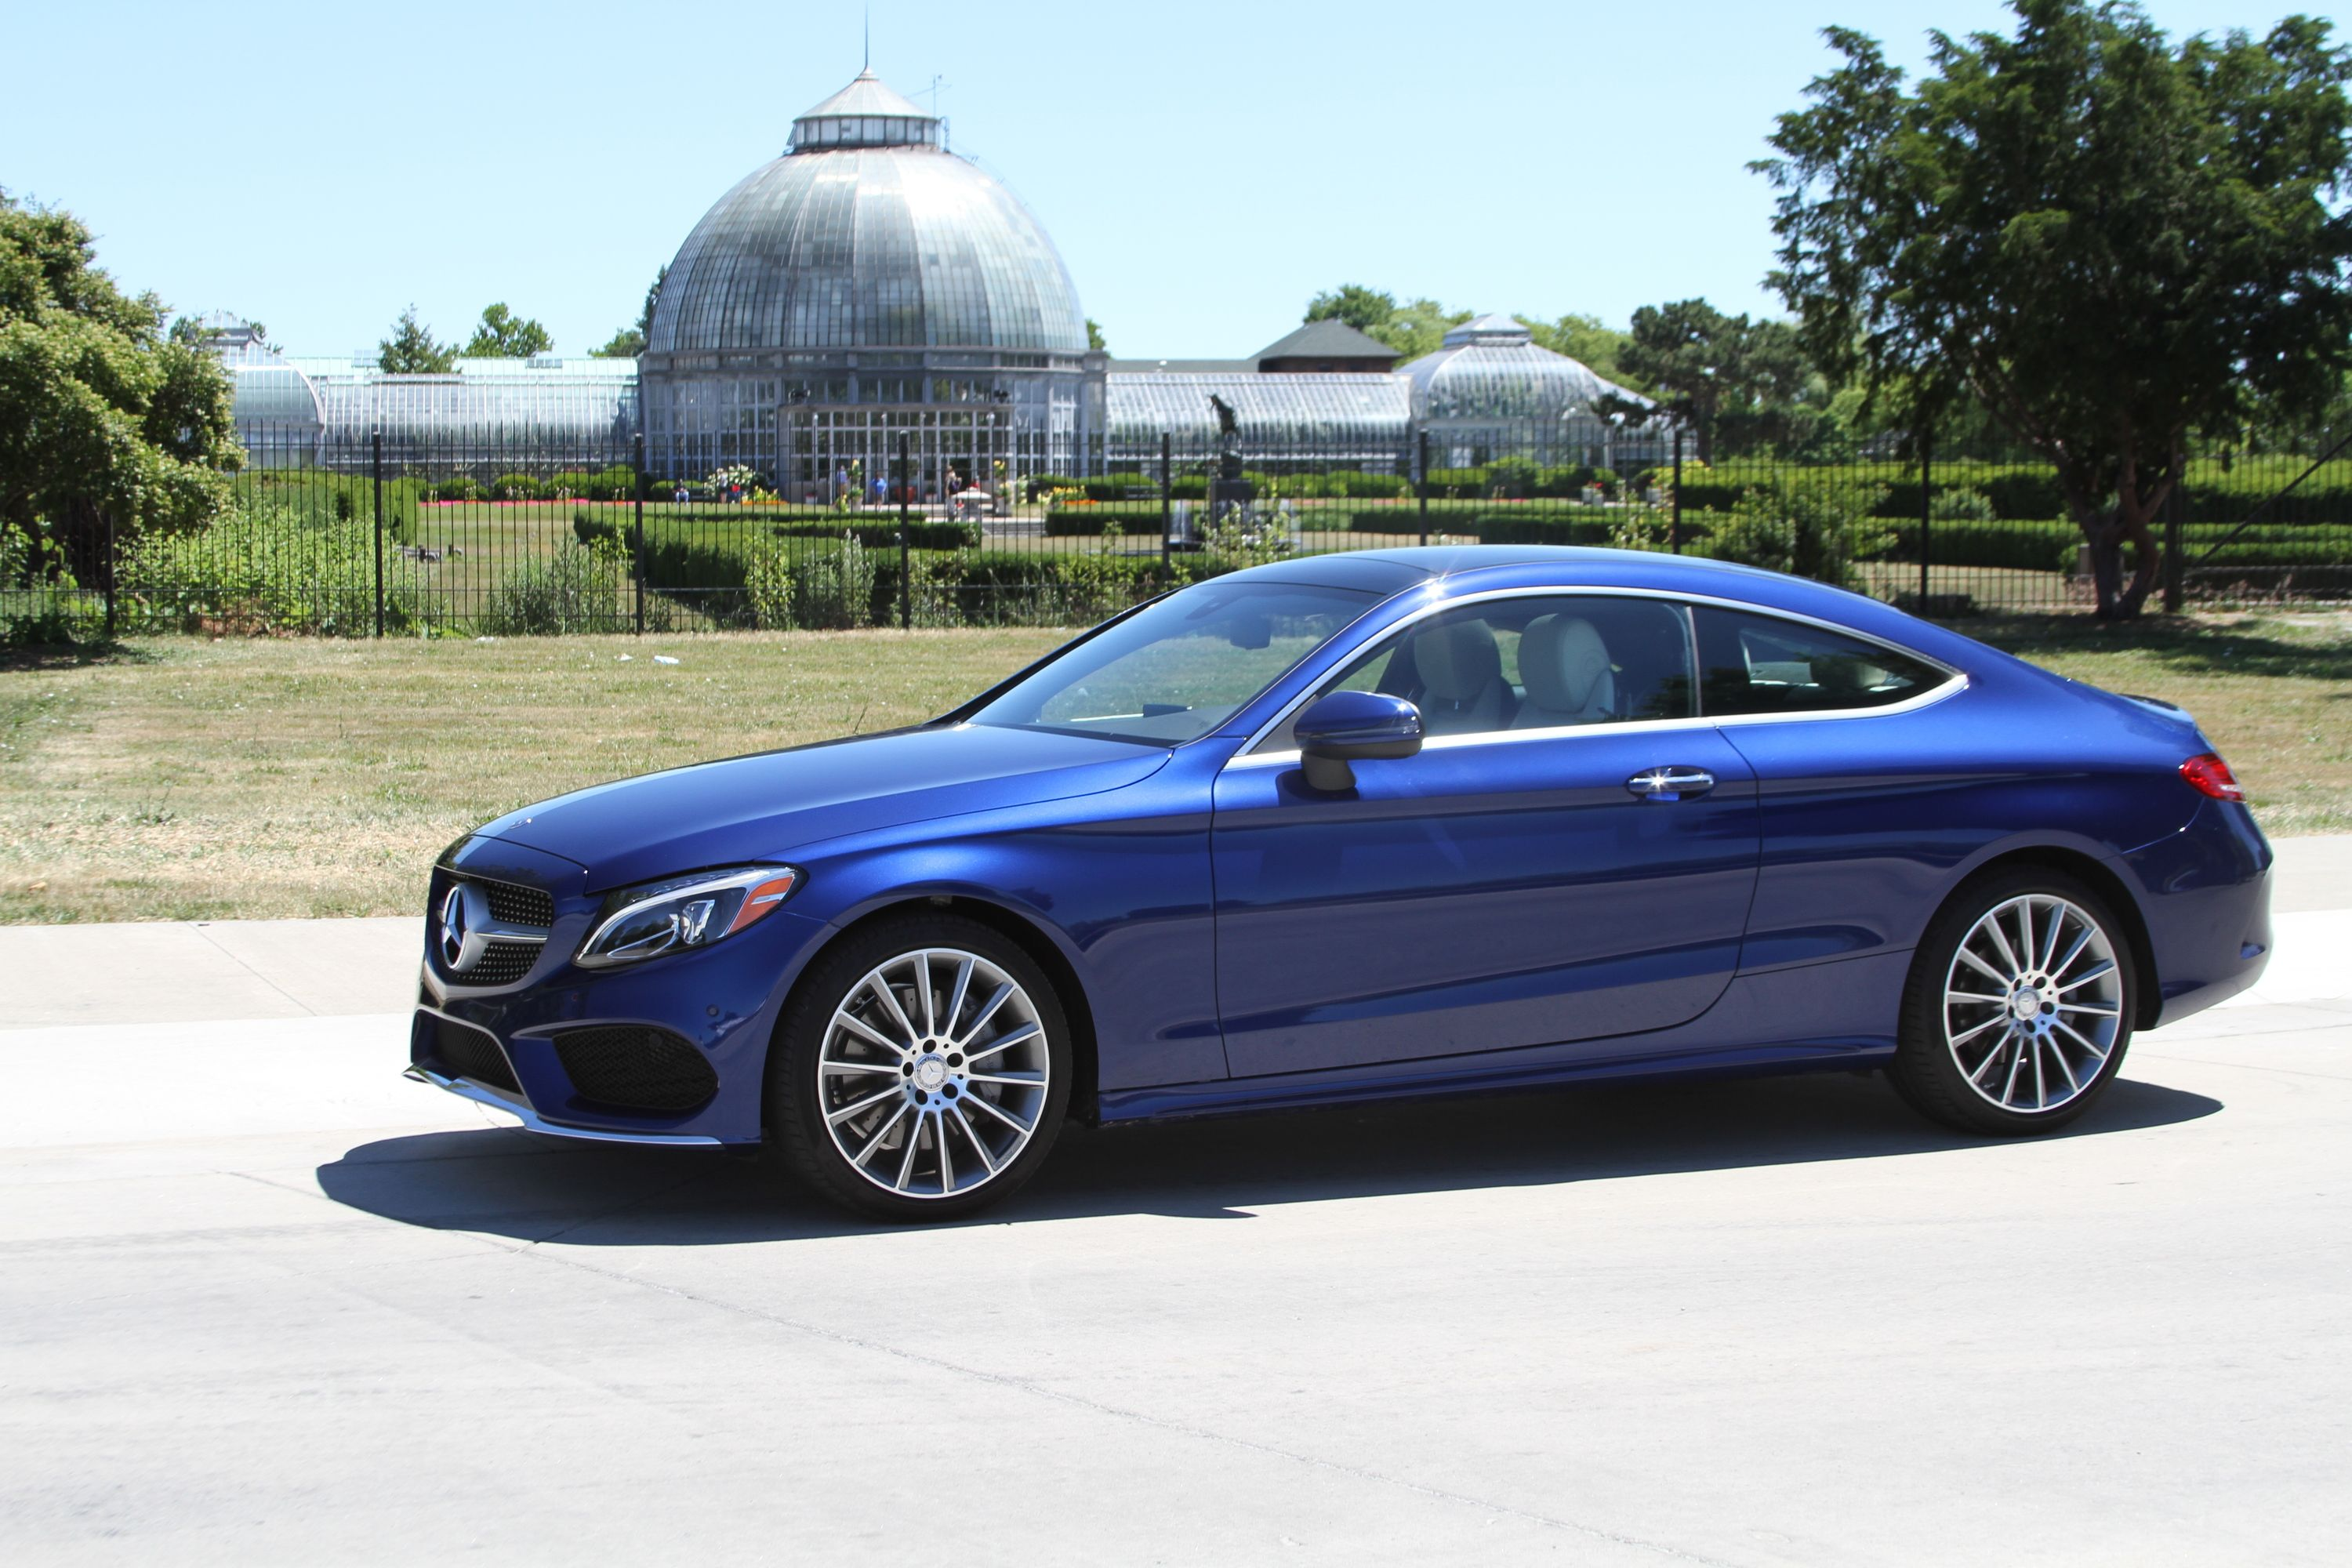 2017 Mercedes Benz C300 Coupe Review